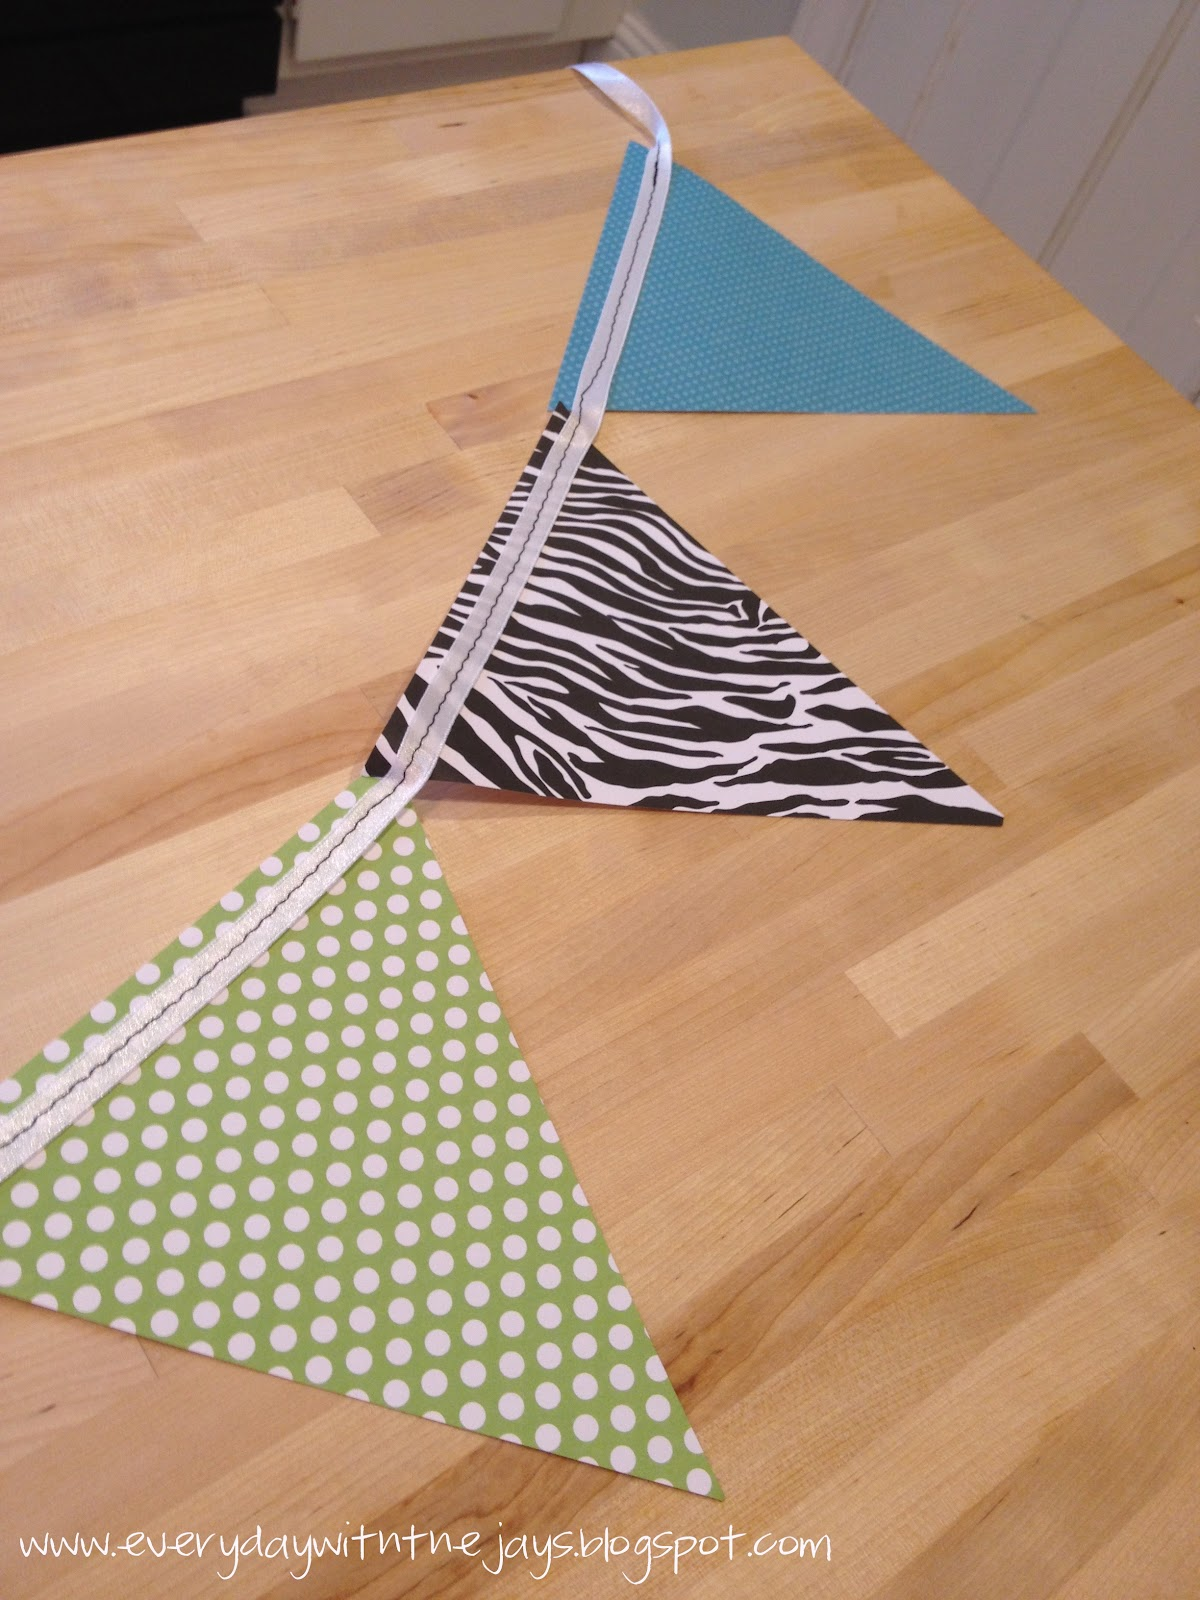 Everyday with the Jays: Make: Paper Pennant Banner